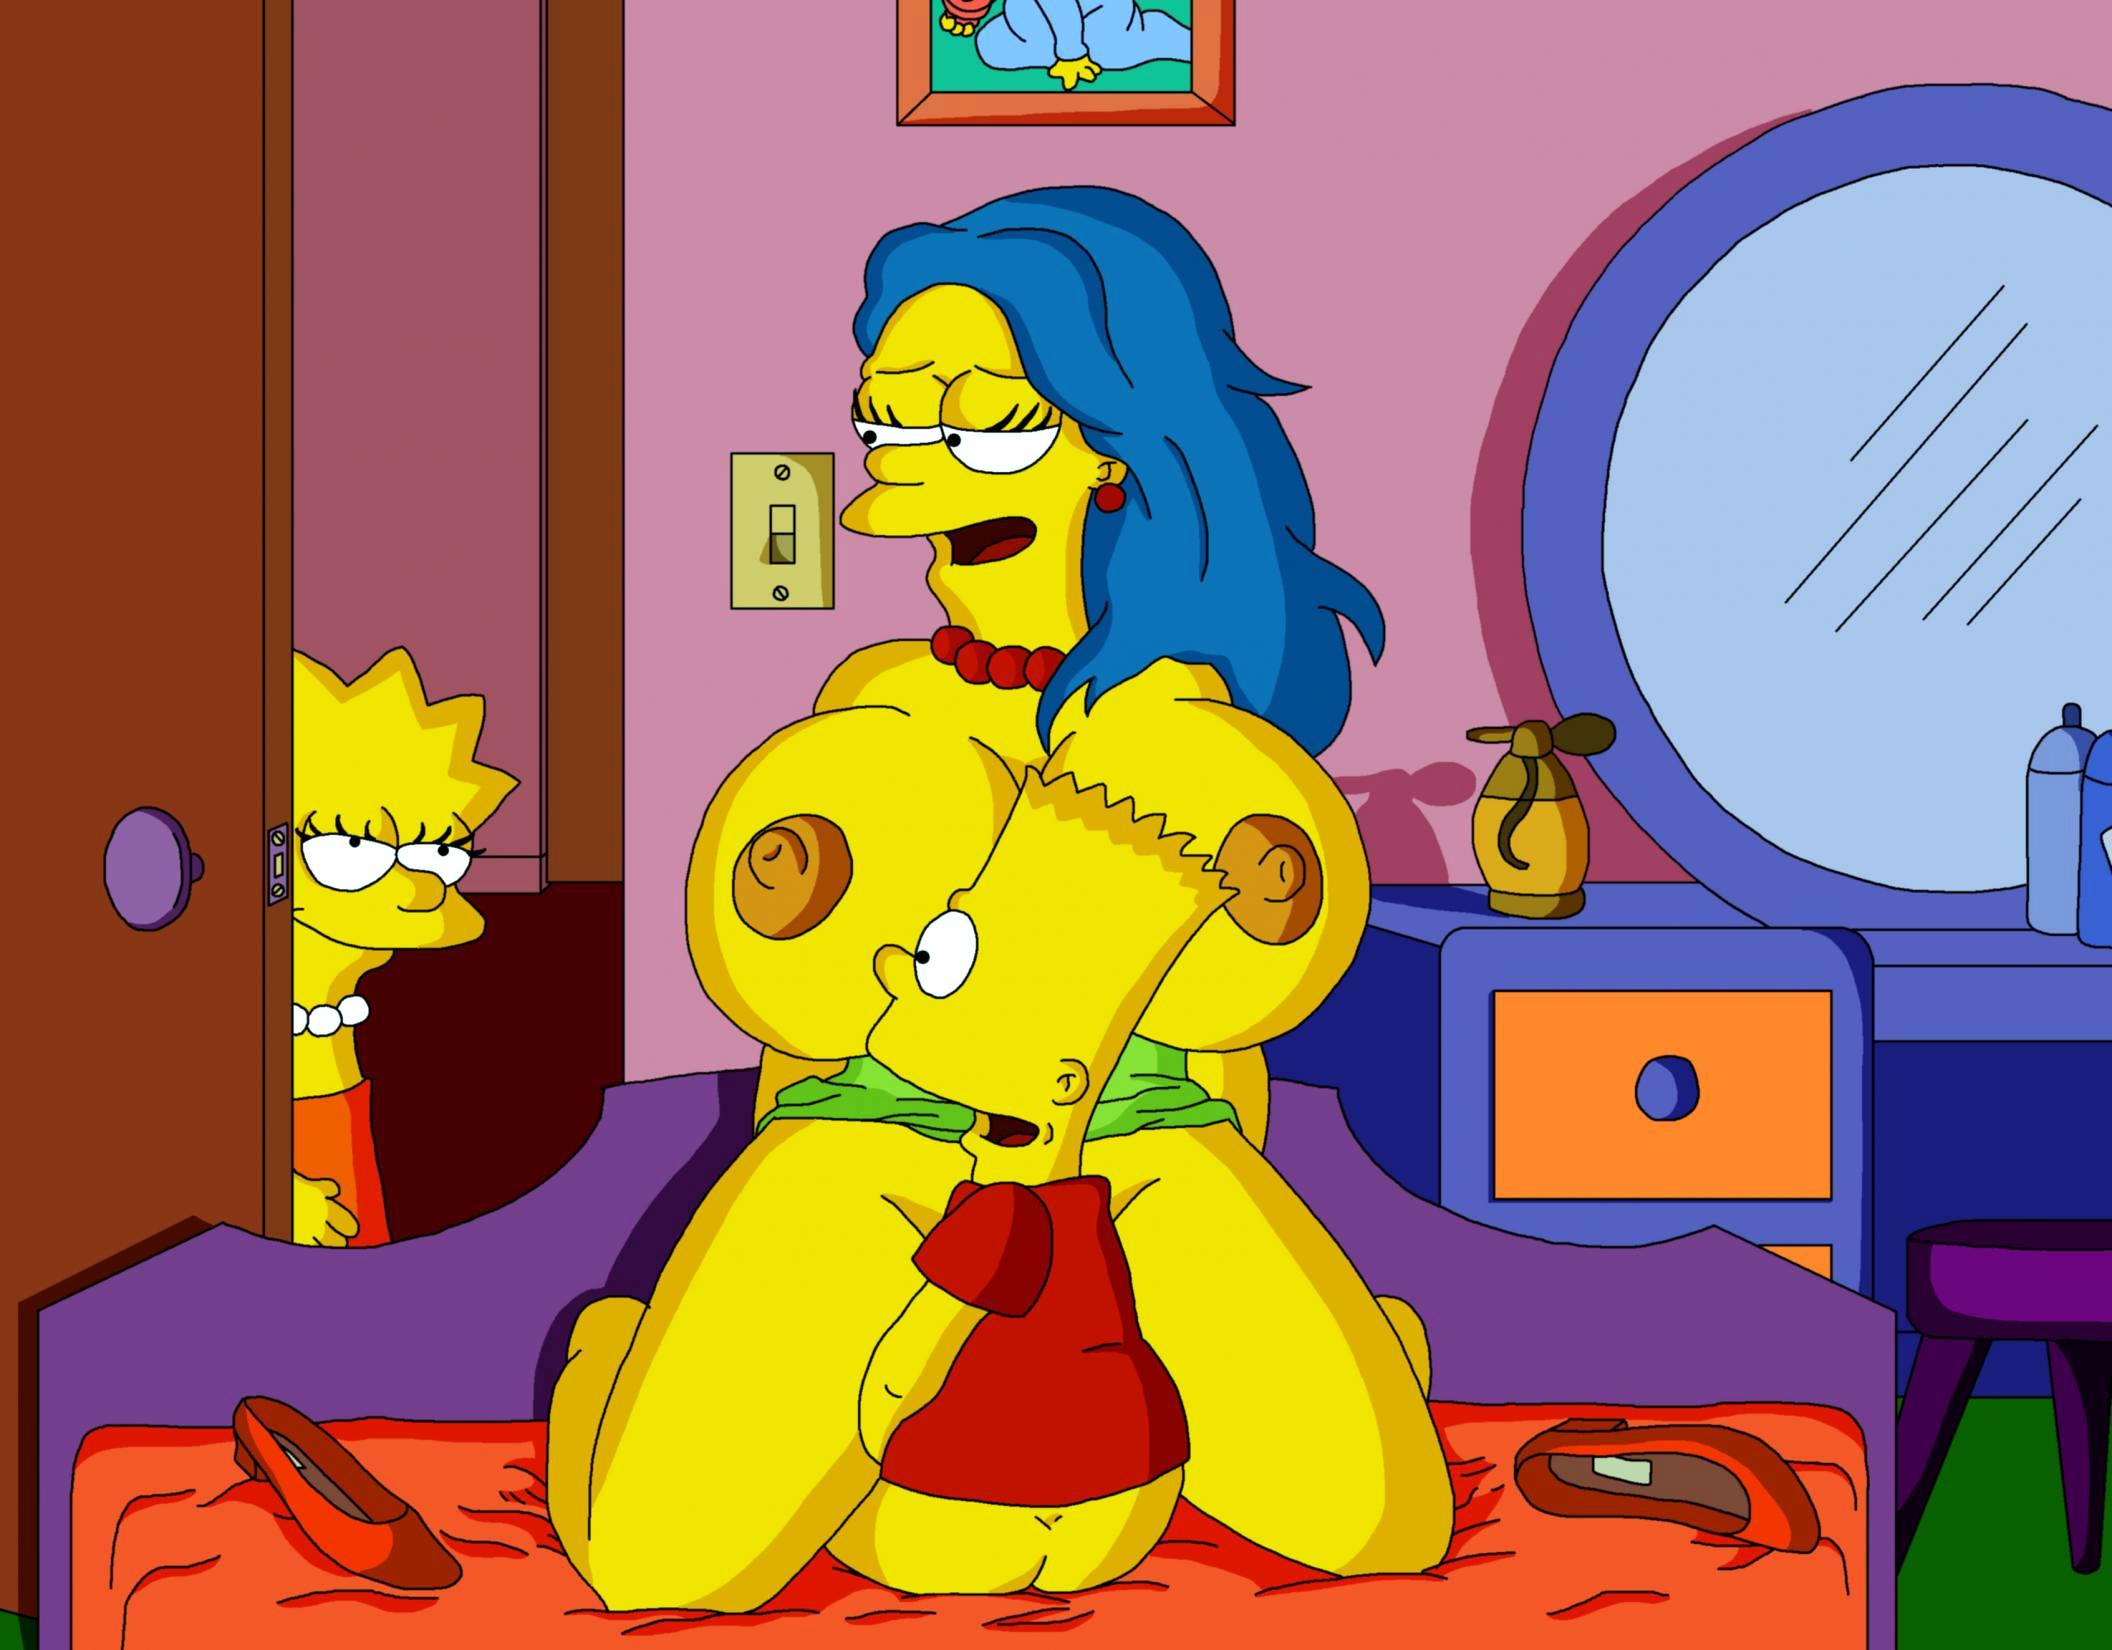 Porn bart simpsons